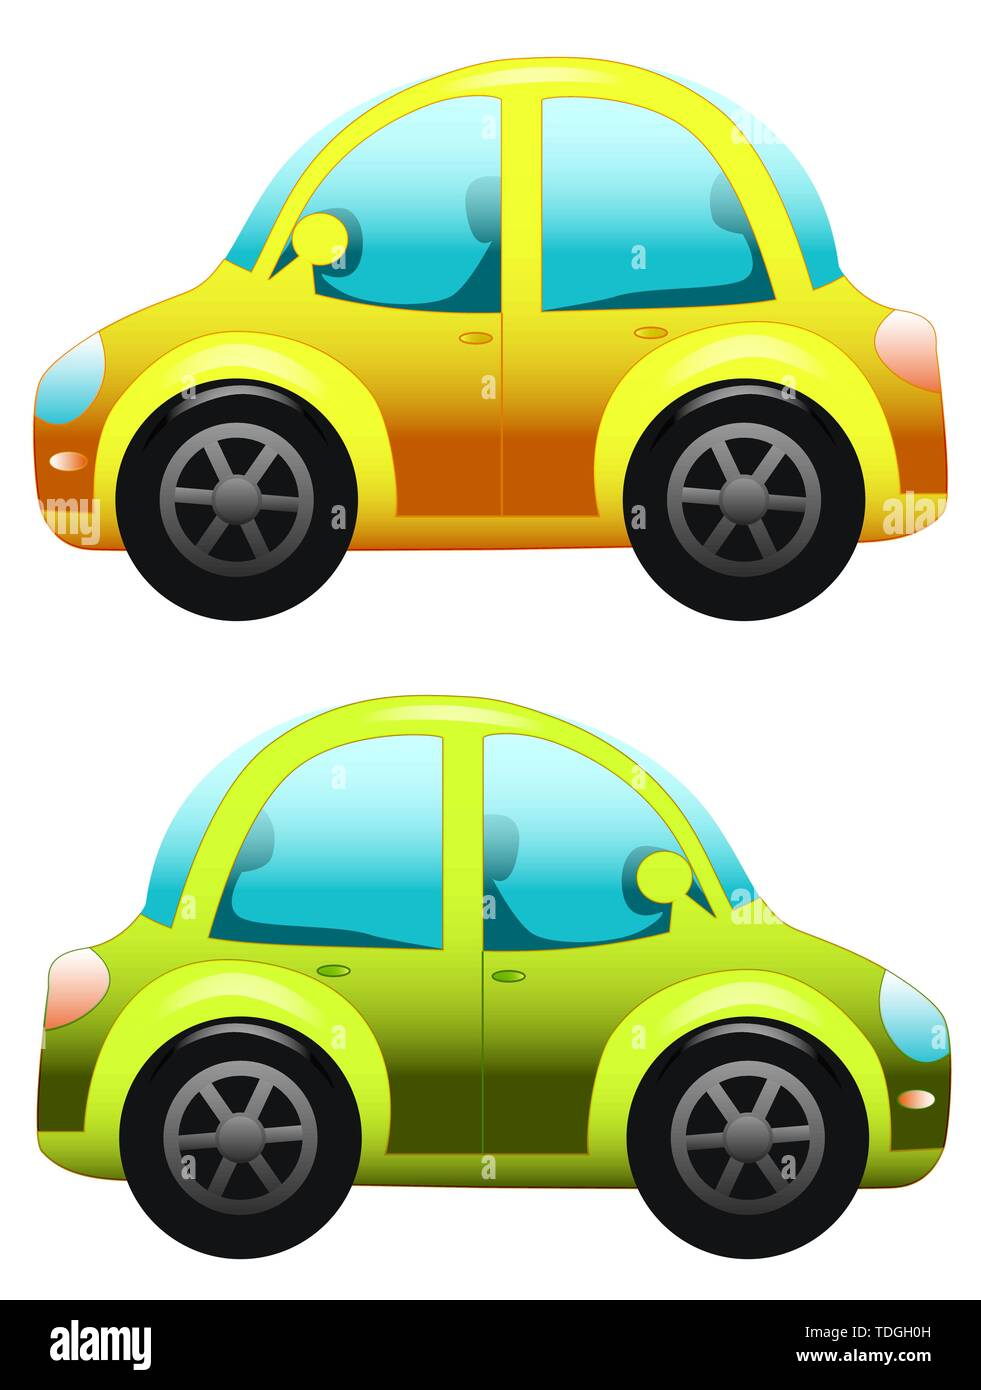 Illustration Of Cars Isolated On White Toy Car Cartoon Car Stock Vector Image Art Alamy